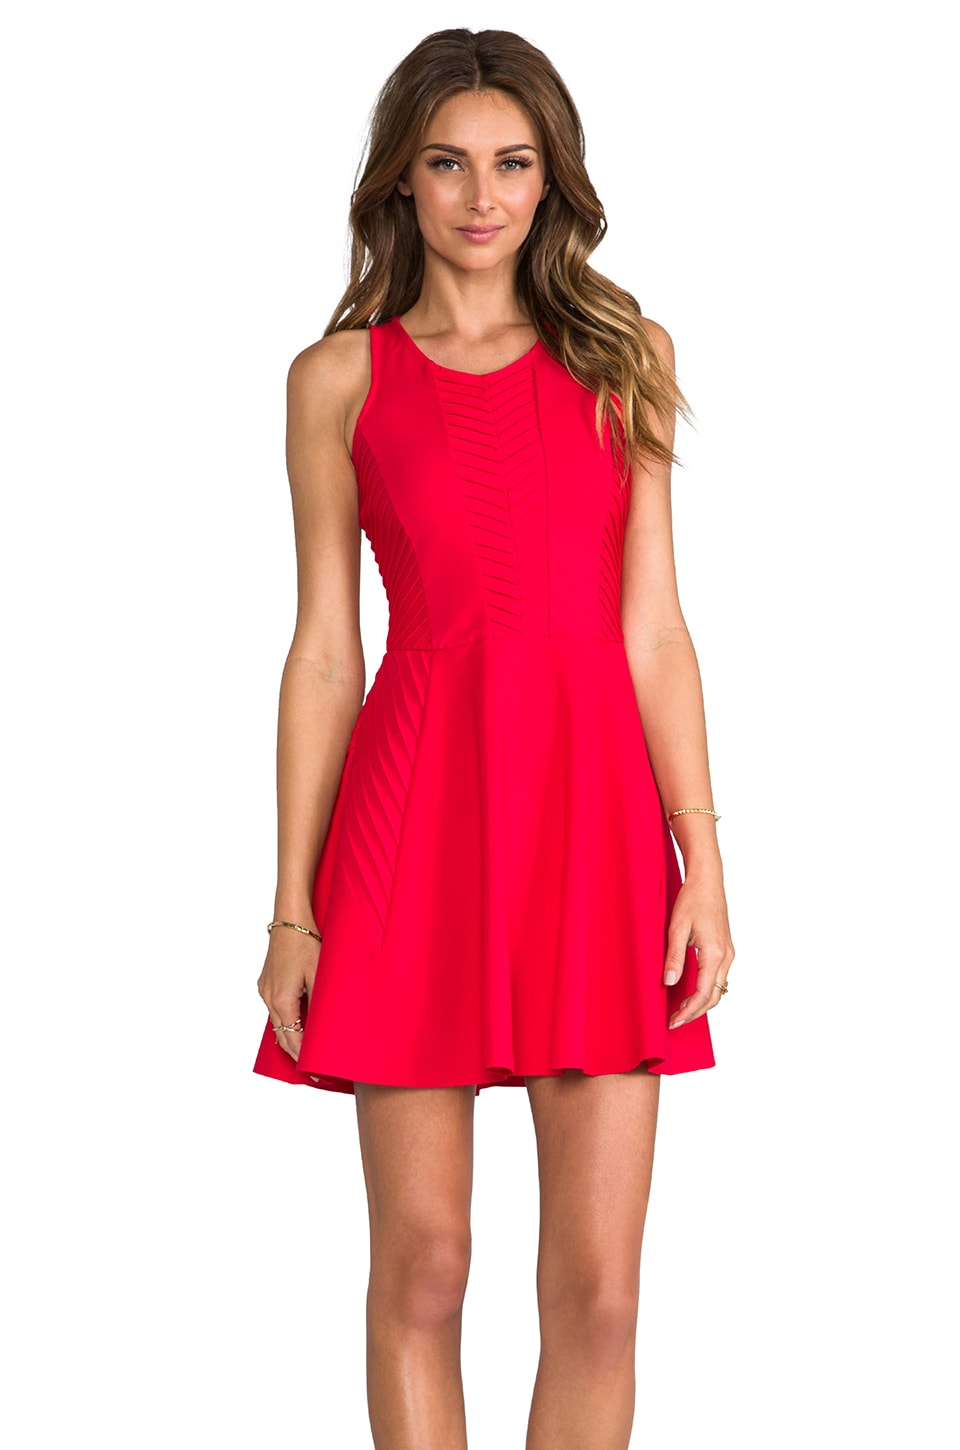 Parker Fay Dress in Poinsettia